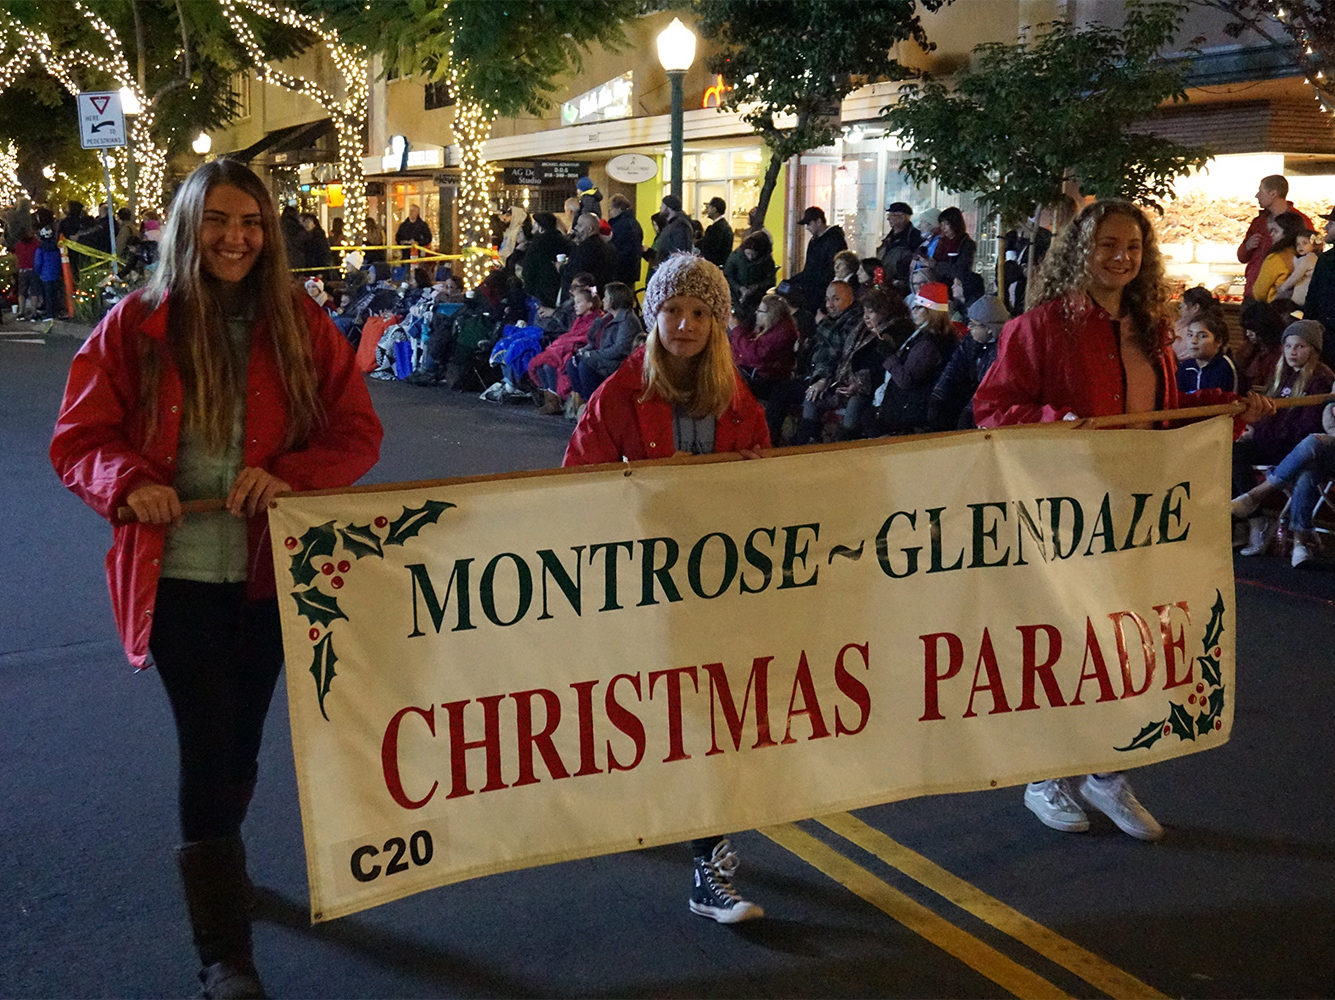 Montrose Christmas Parade 2020 Montrose Christmas Parade Association | History